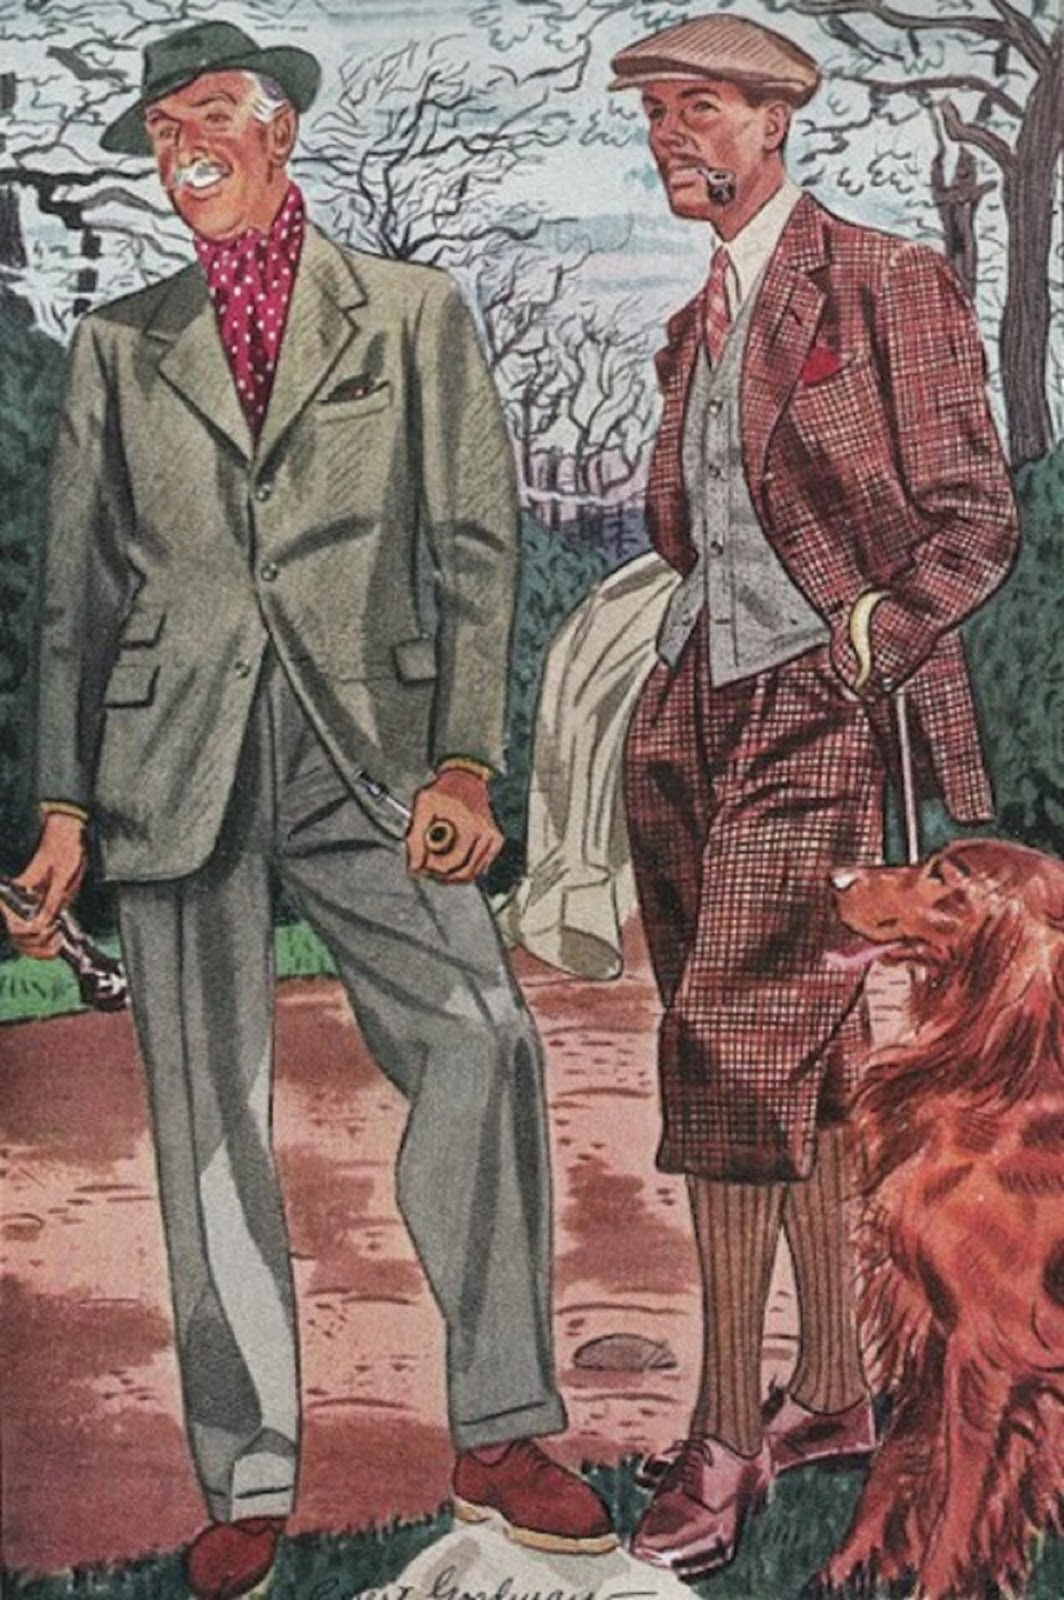 1930s Men's walking clothes, illustration by Fellows for Esquire